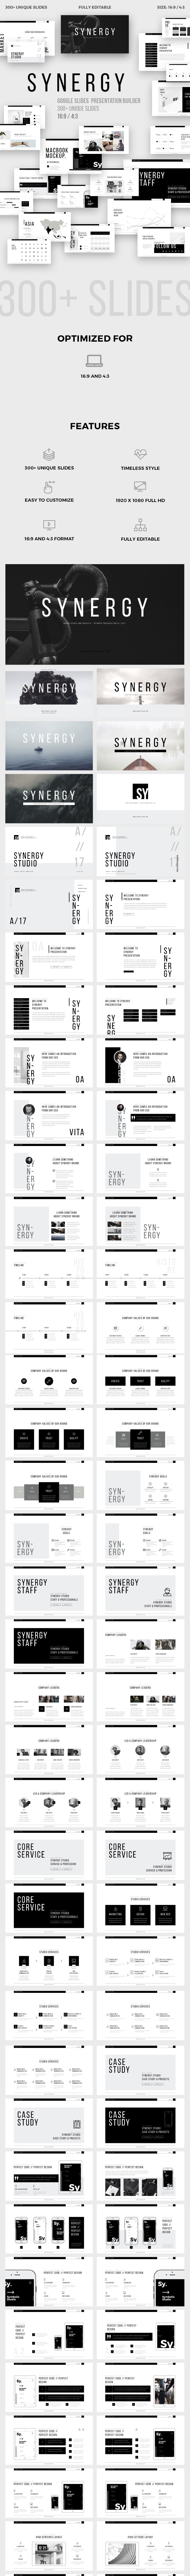 Synergy Minimal Google Slides Template - Google Slides Presentation Templates